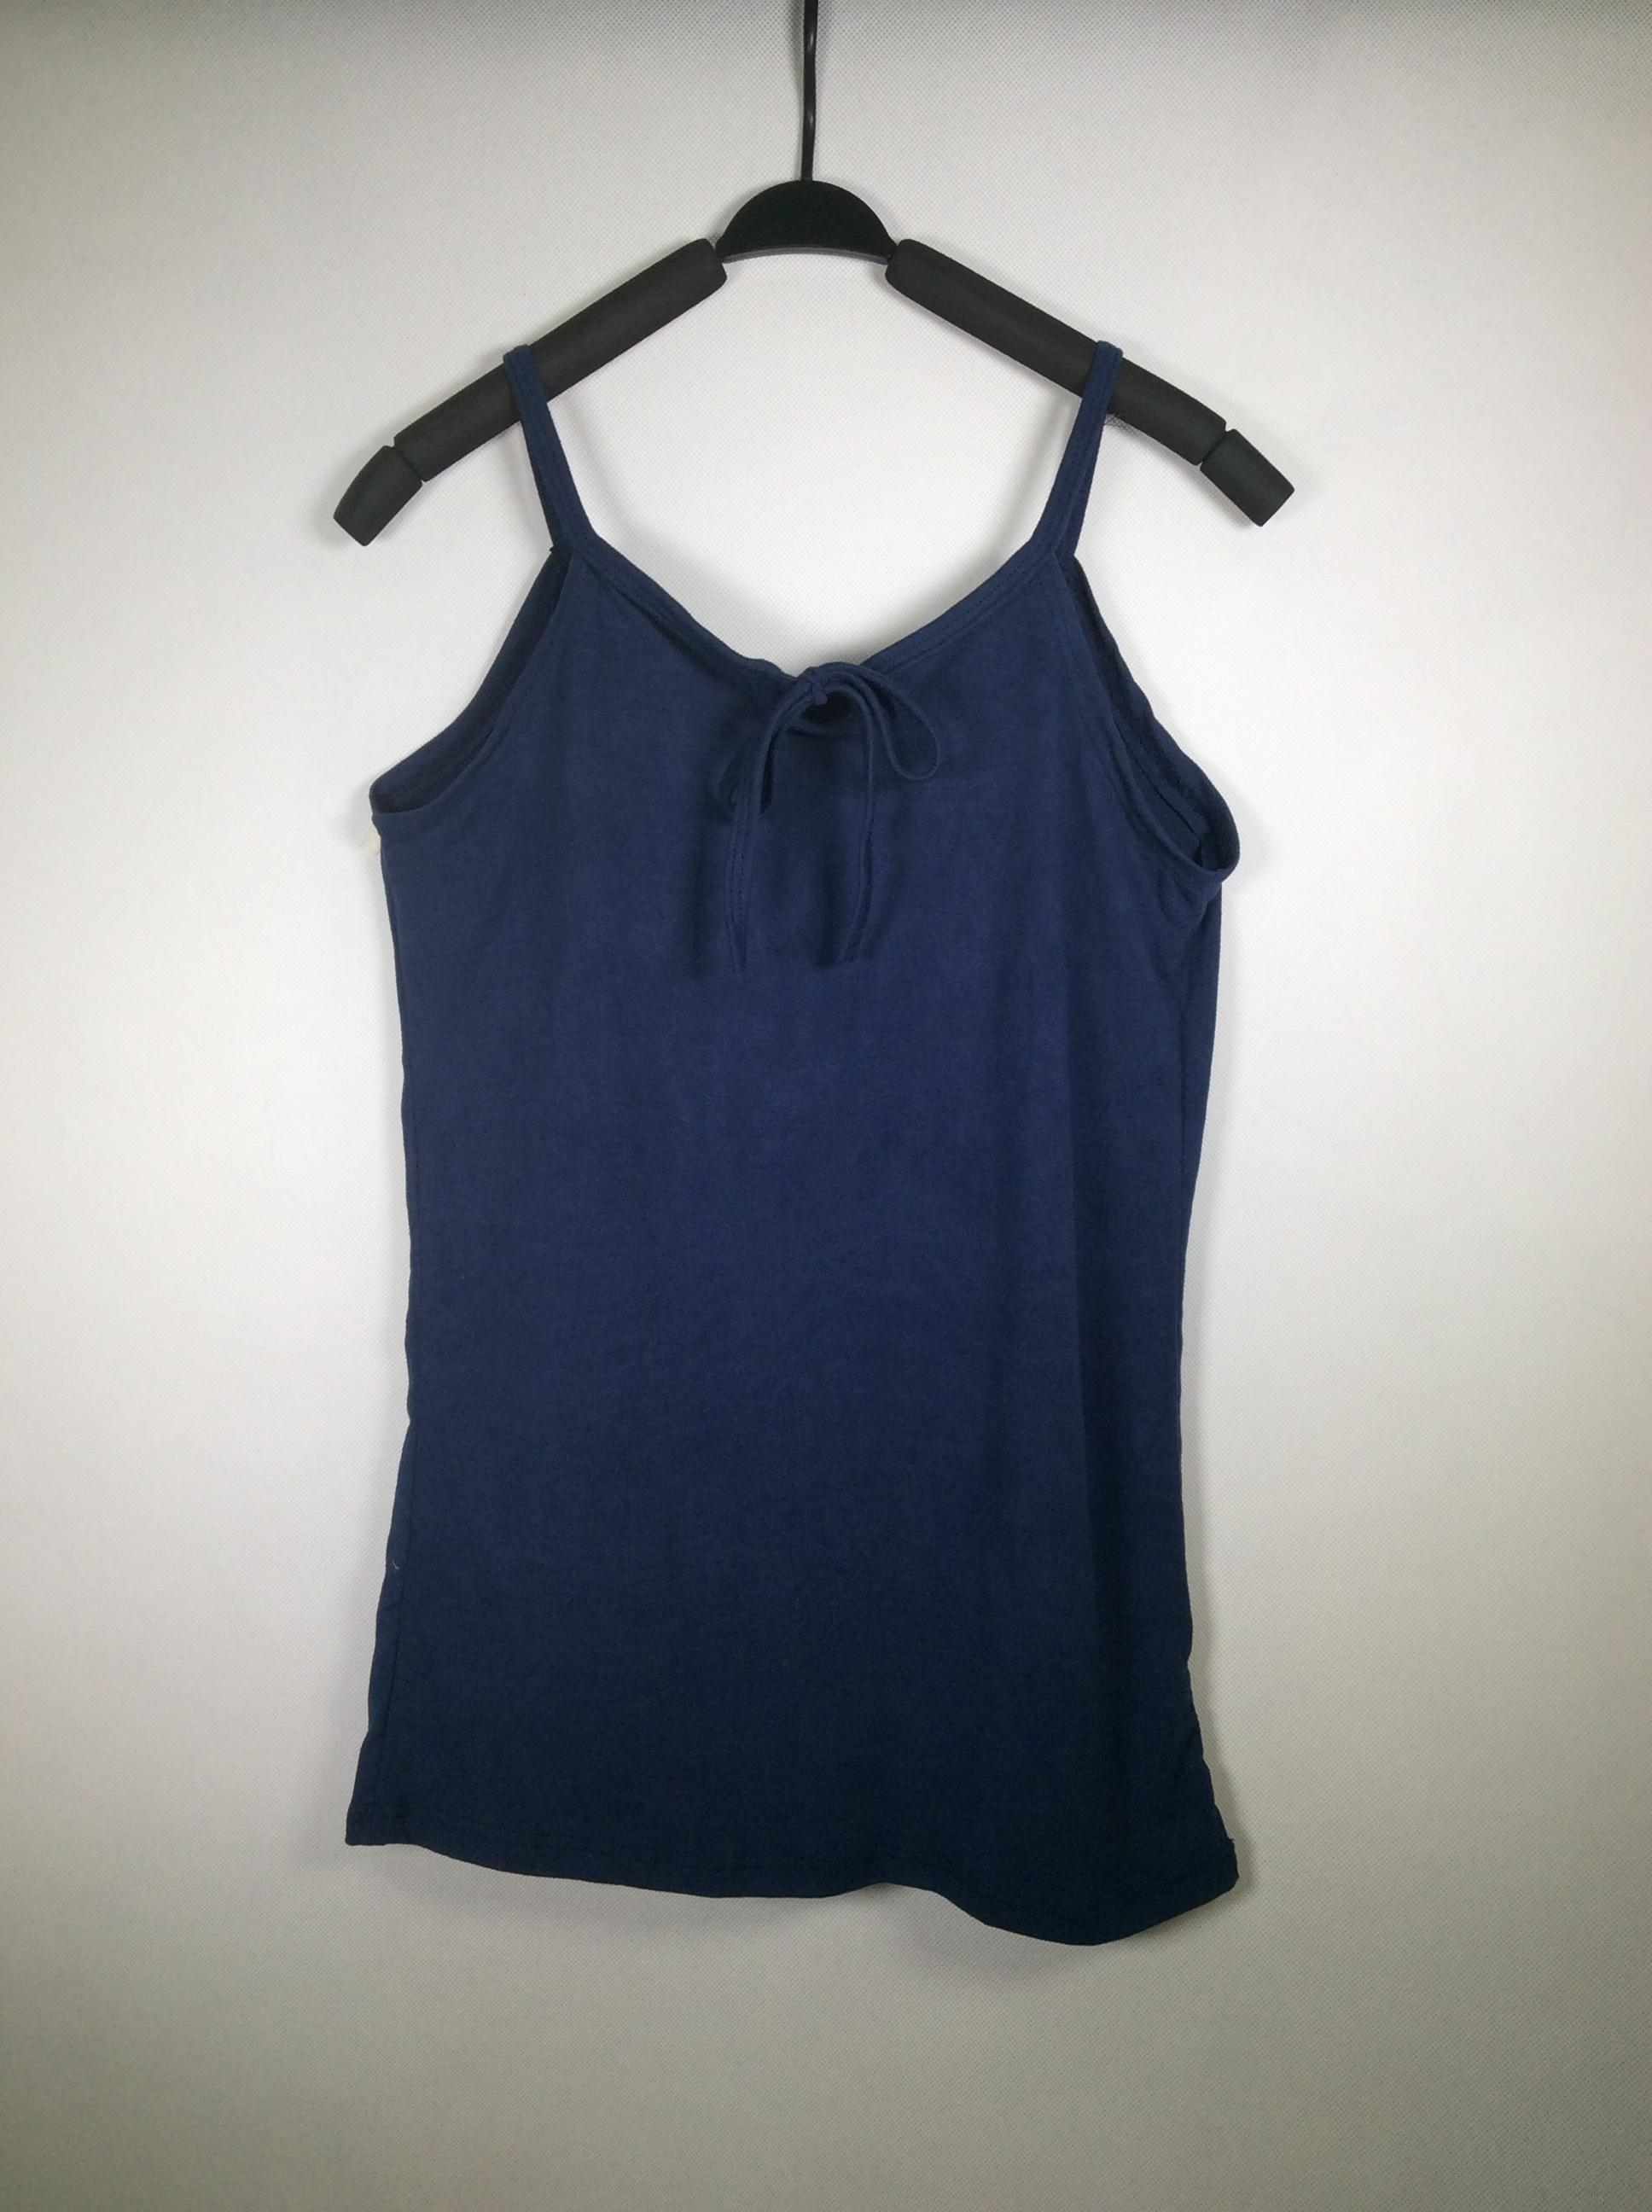 a353724efc2 Tank Tops for Women for sale - Camisole for Women Online Deals ...